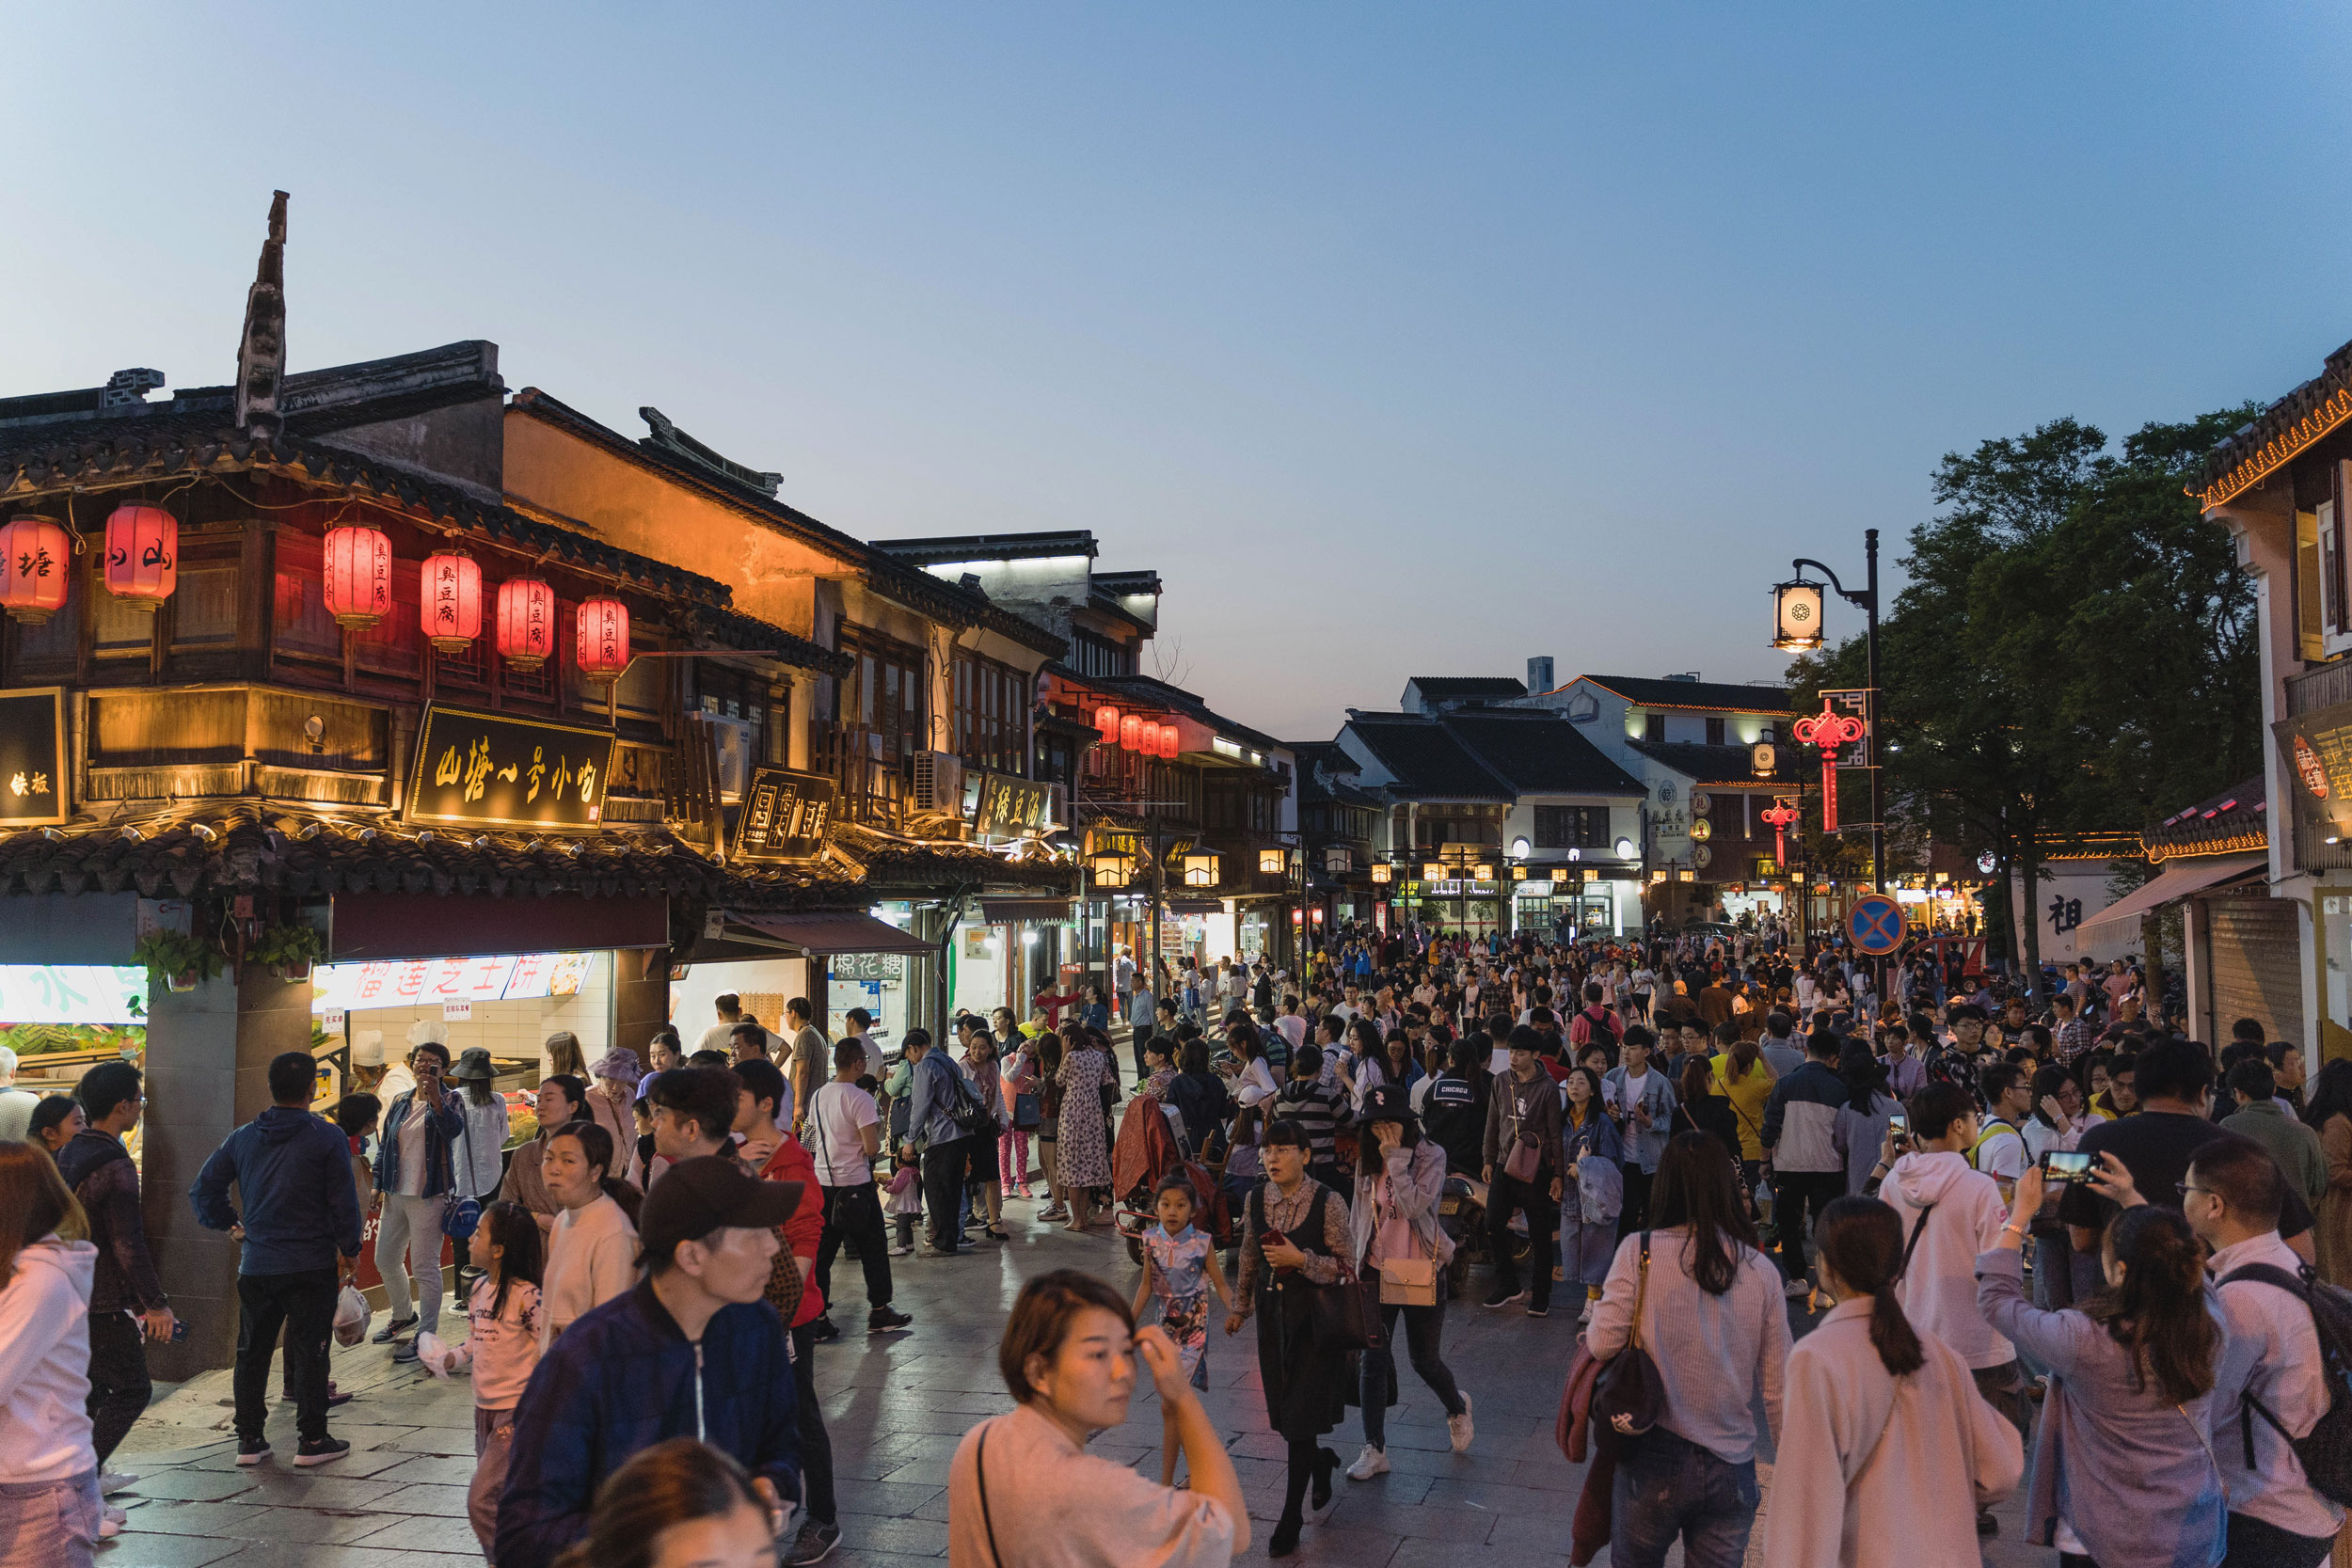 Beihao Long street in the evening